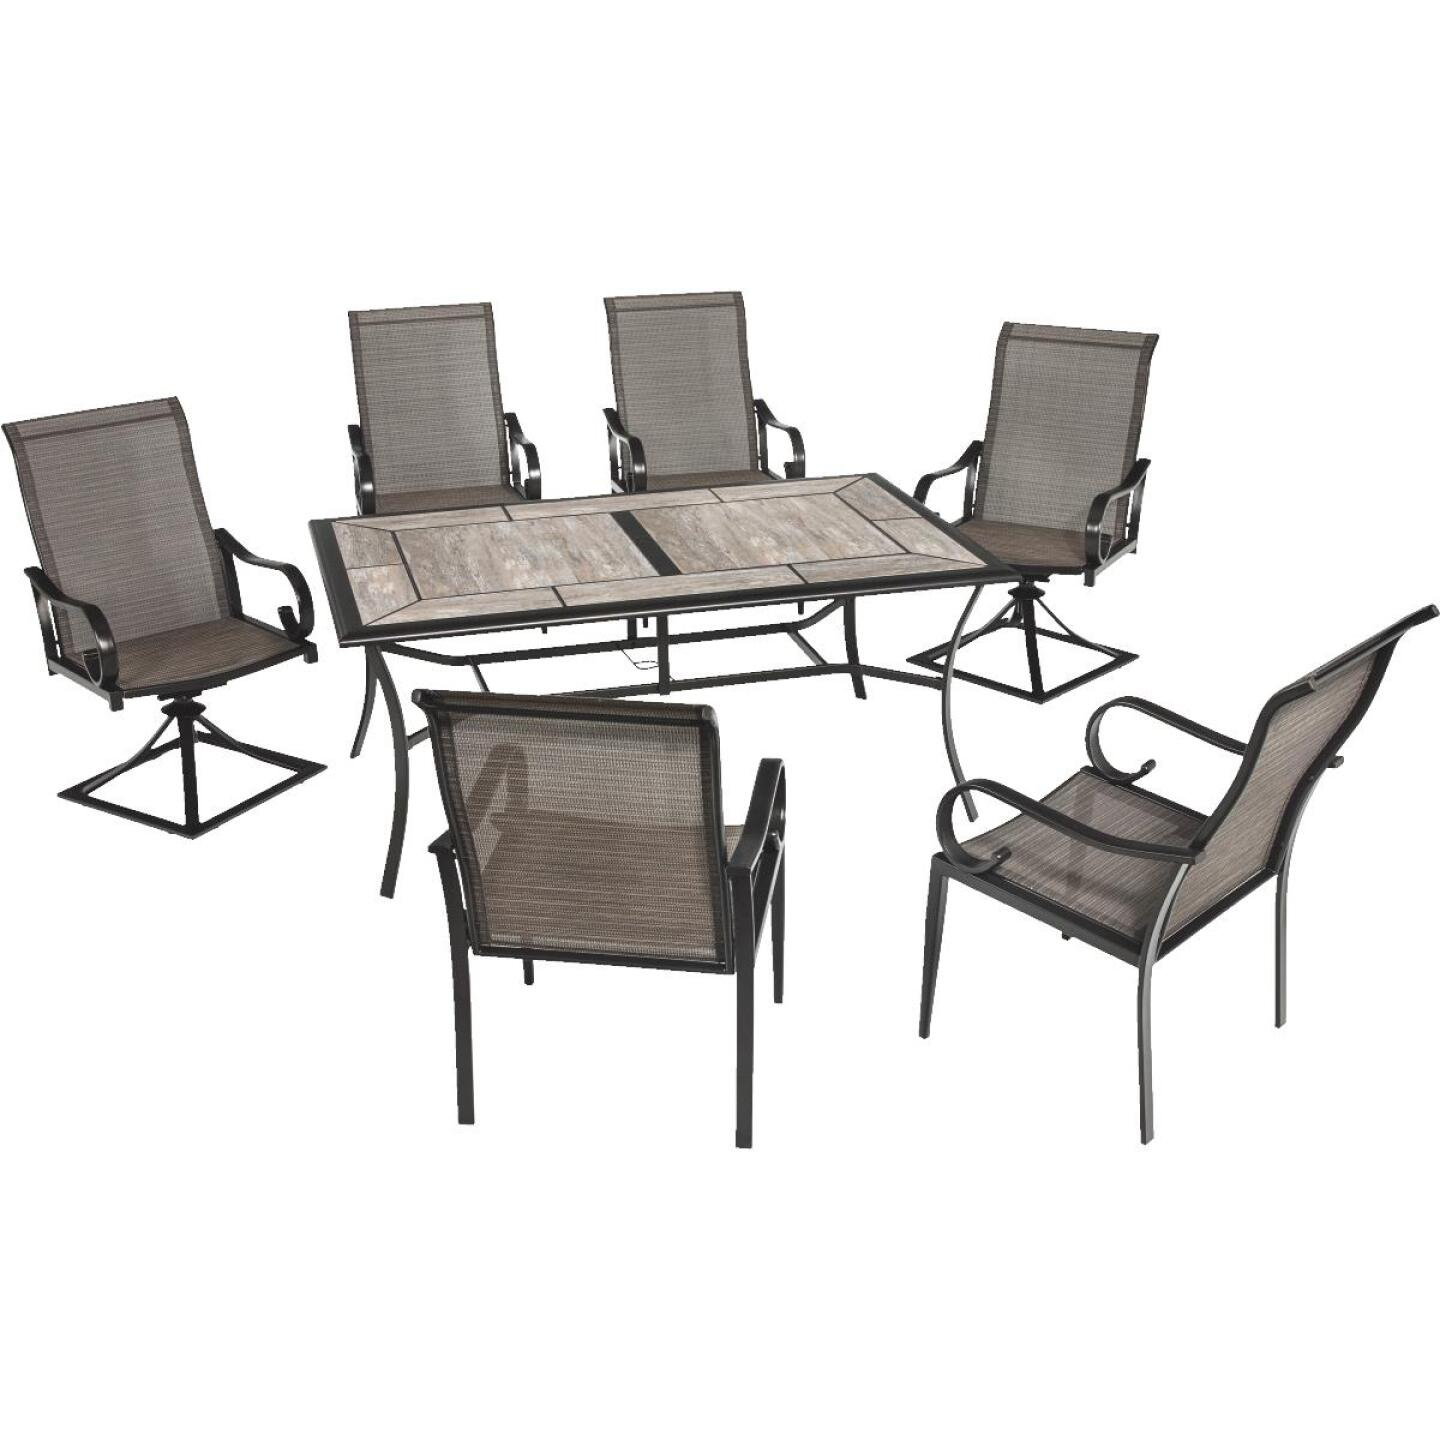 Outdoor Expressions Berkshire 7-Piece Dining Set Image 146